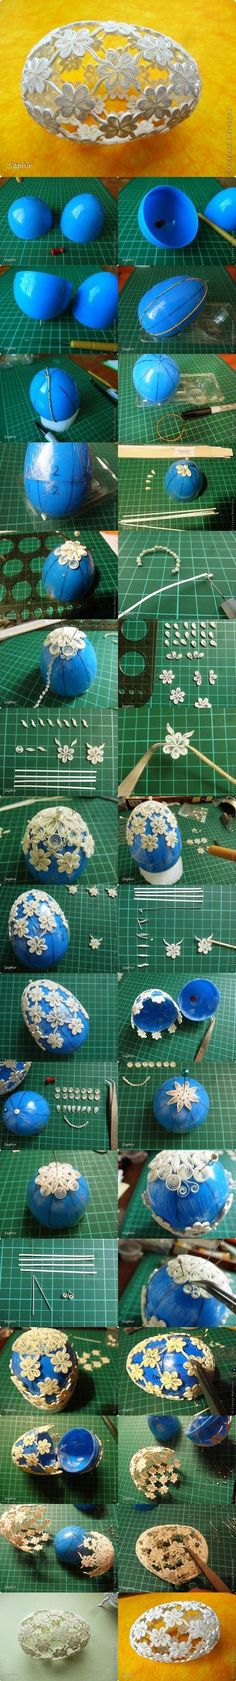 DIY Quilling Flowers Easter Egg | iCreativeIdeas.com Follow Us on Facebook --> https://www.facebook.com/icreativeideas: